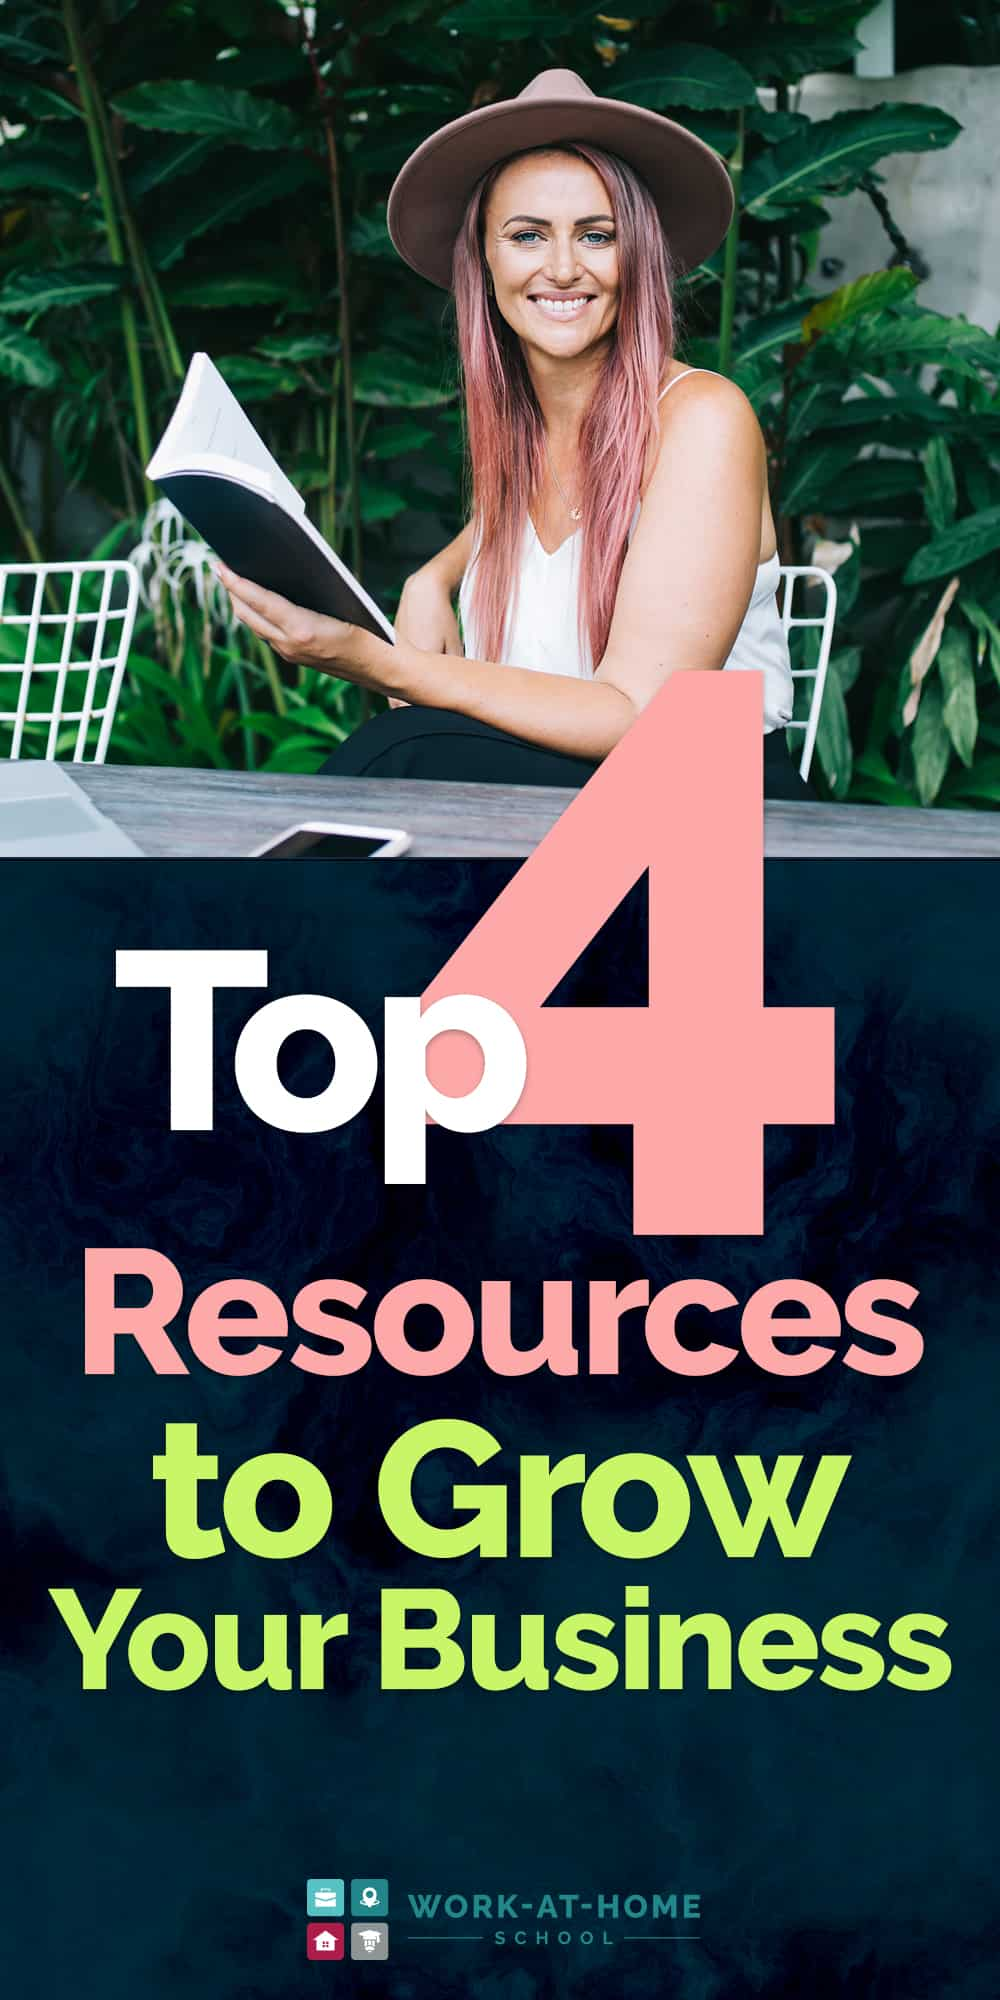 Check out these work-at-home resources for advanced business owners so you can grow your online business!